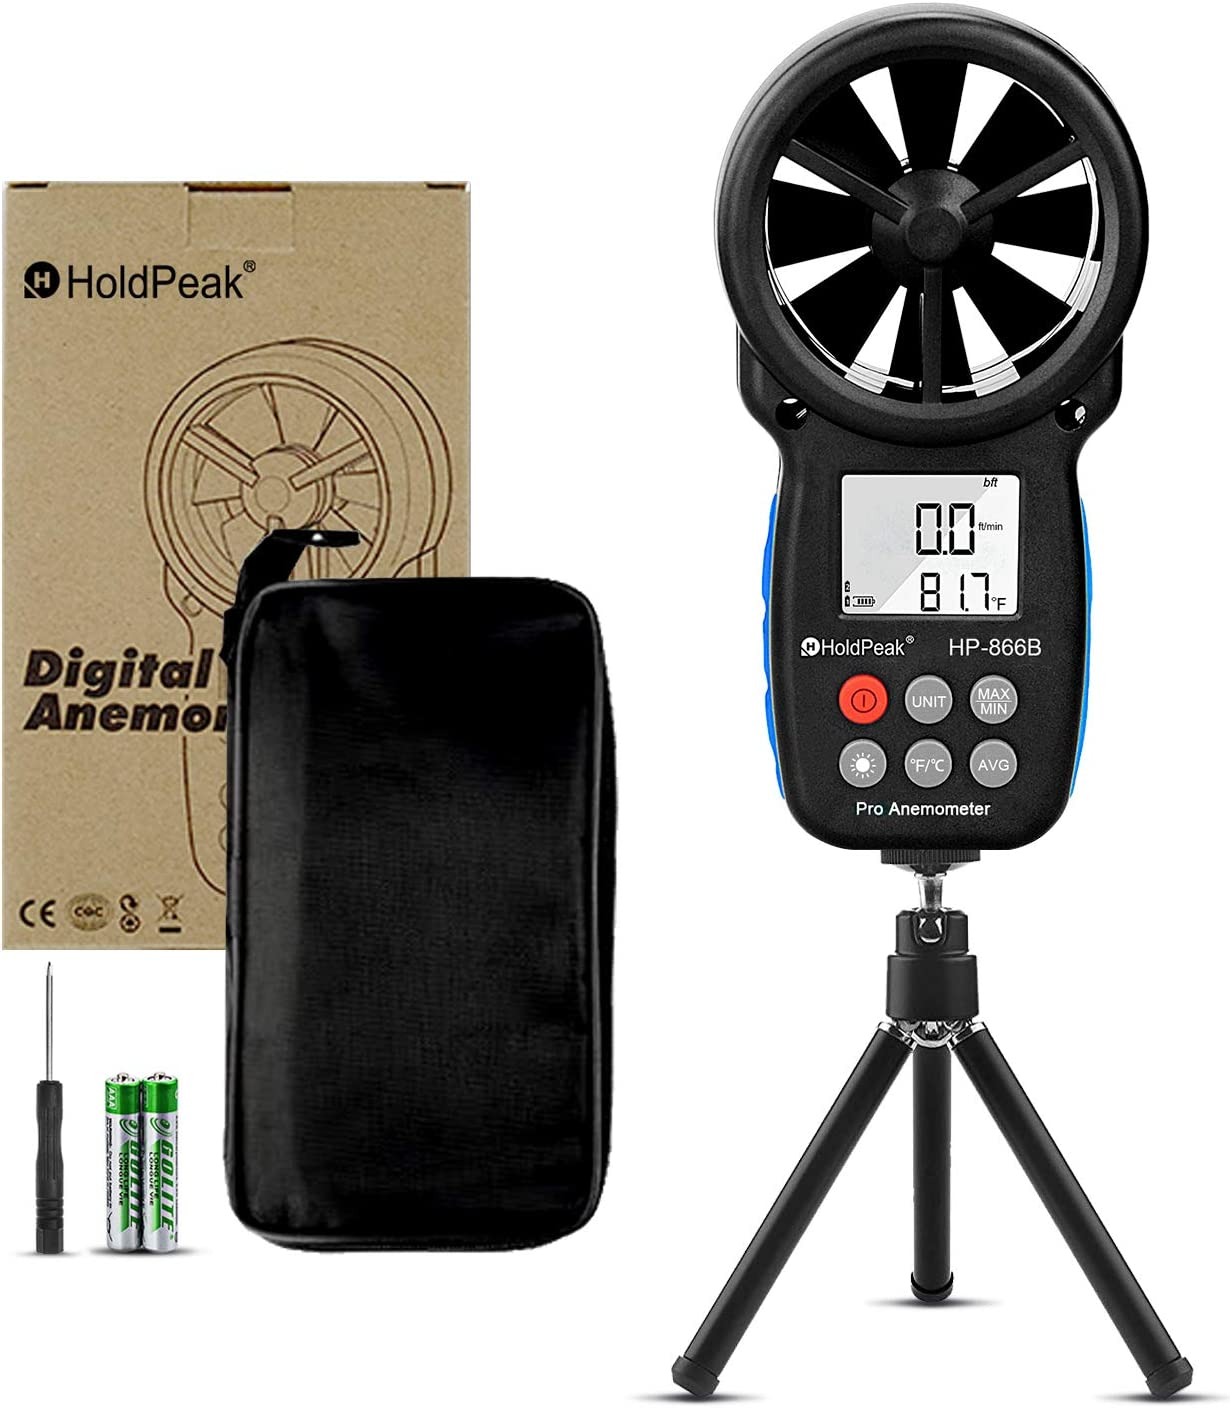 HOLDPEAK HP-866B Digital Anemometer Handheld Wind Speed Meter Gauges with Data Hold,Backlight,Wind Chill Indication for Flying,Hiking & Shooting